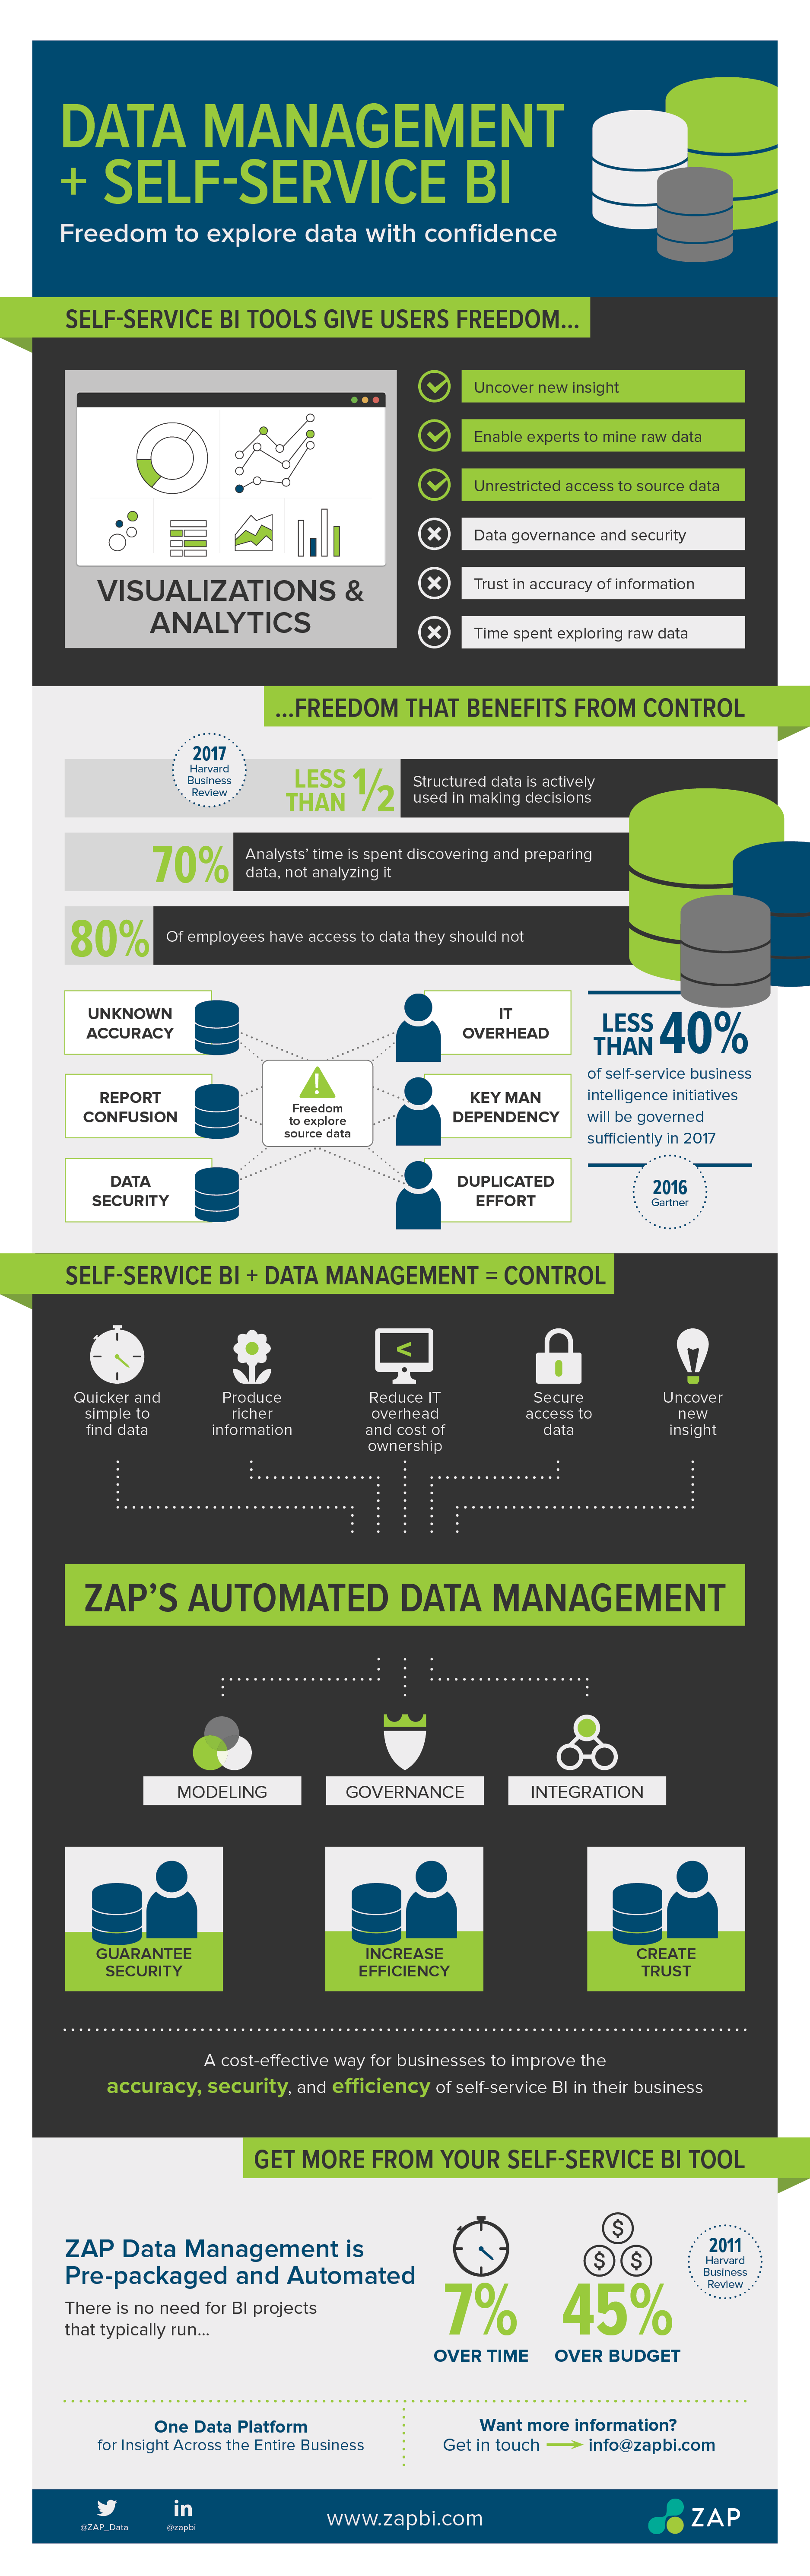 Data Management and Self-Service BI